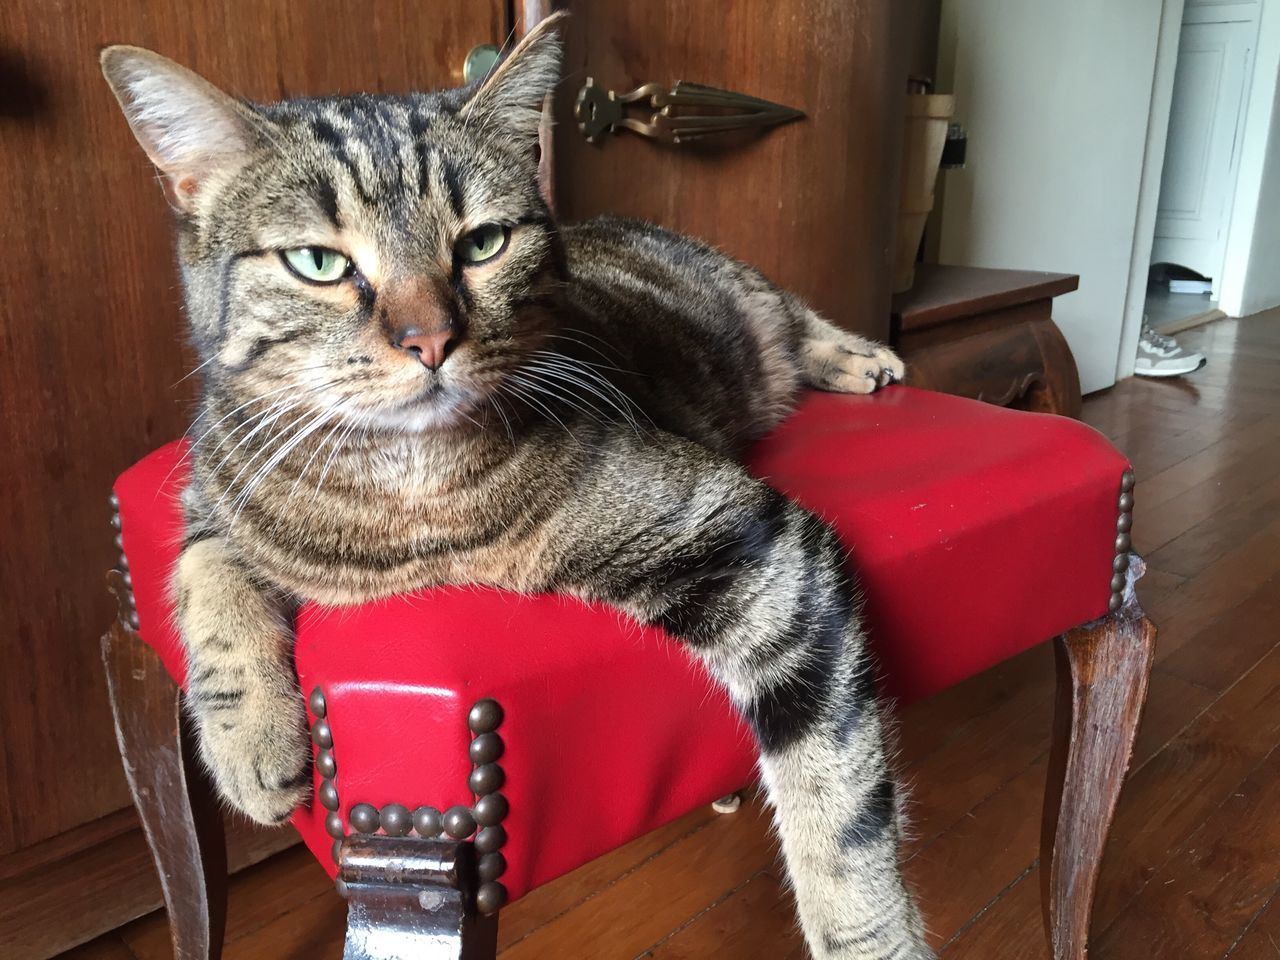 domestic cat, pets, domestic animals, mammal, one animal, animal themes, indoors, feline, looking at camera, table, chair, wood - material, no people, whisker, portrait, hardwood floor, sitting, close-up, day